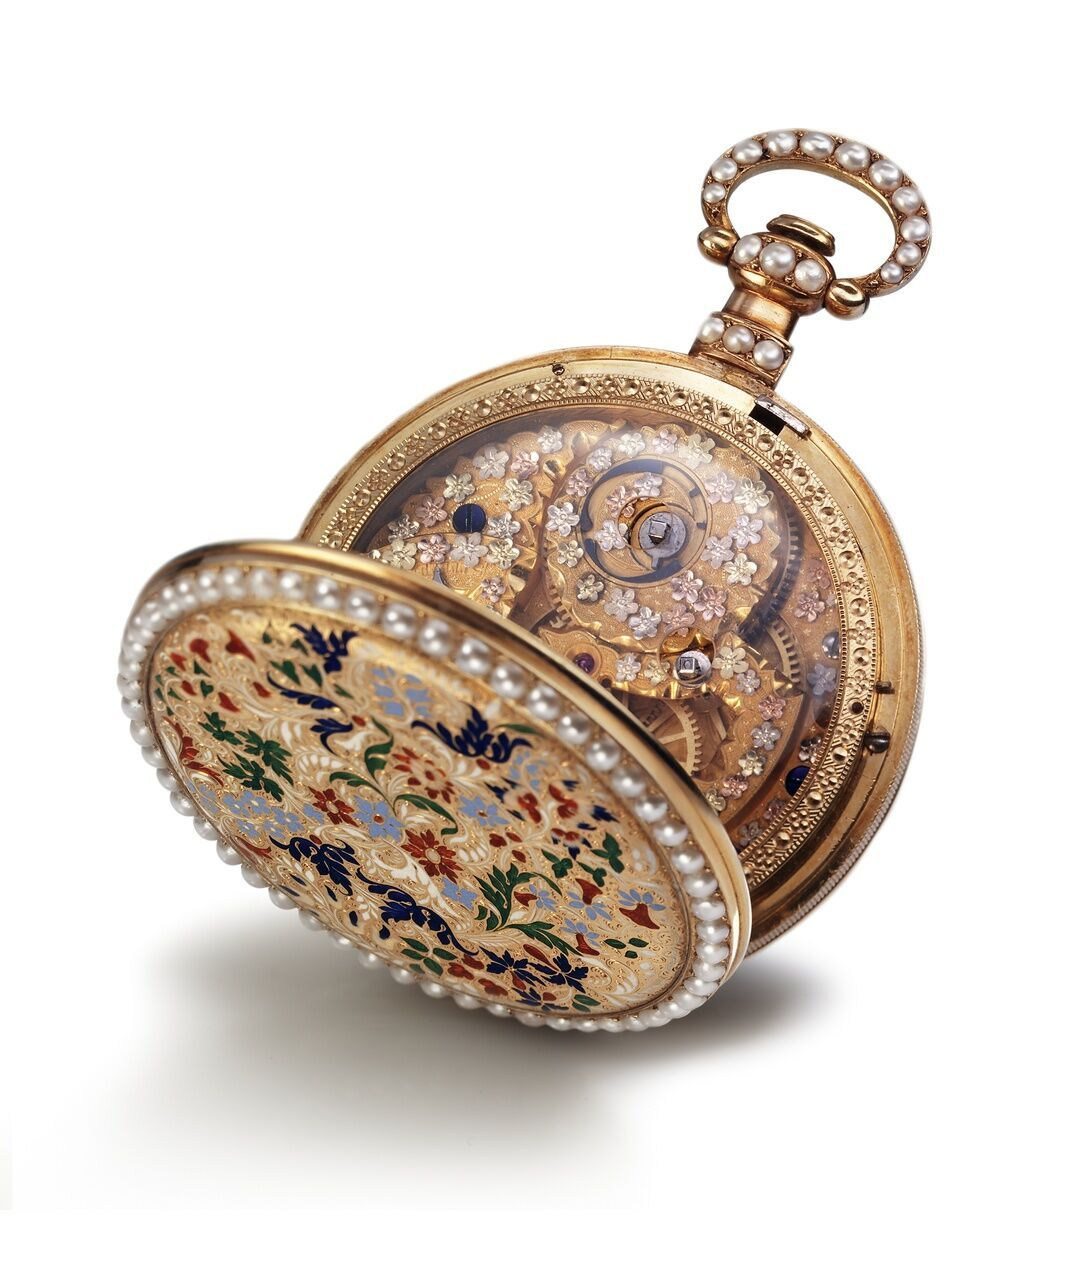 Early Bovet pockect watch with glass back